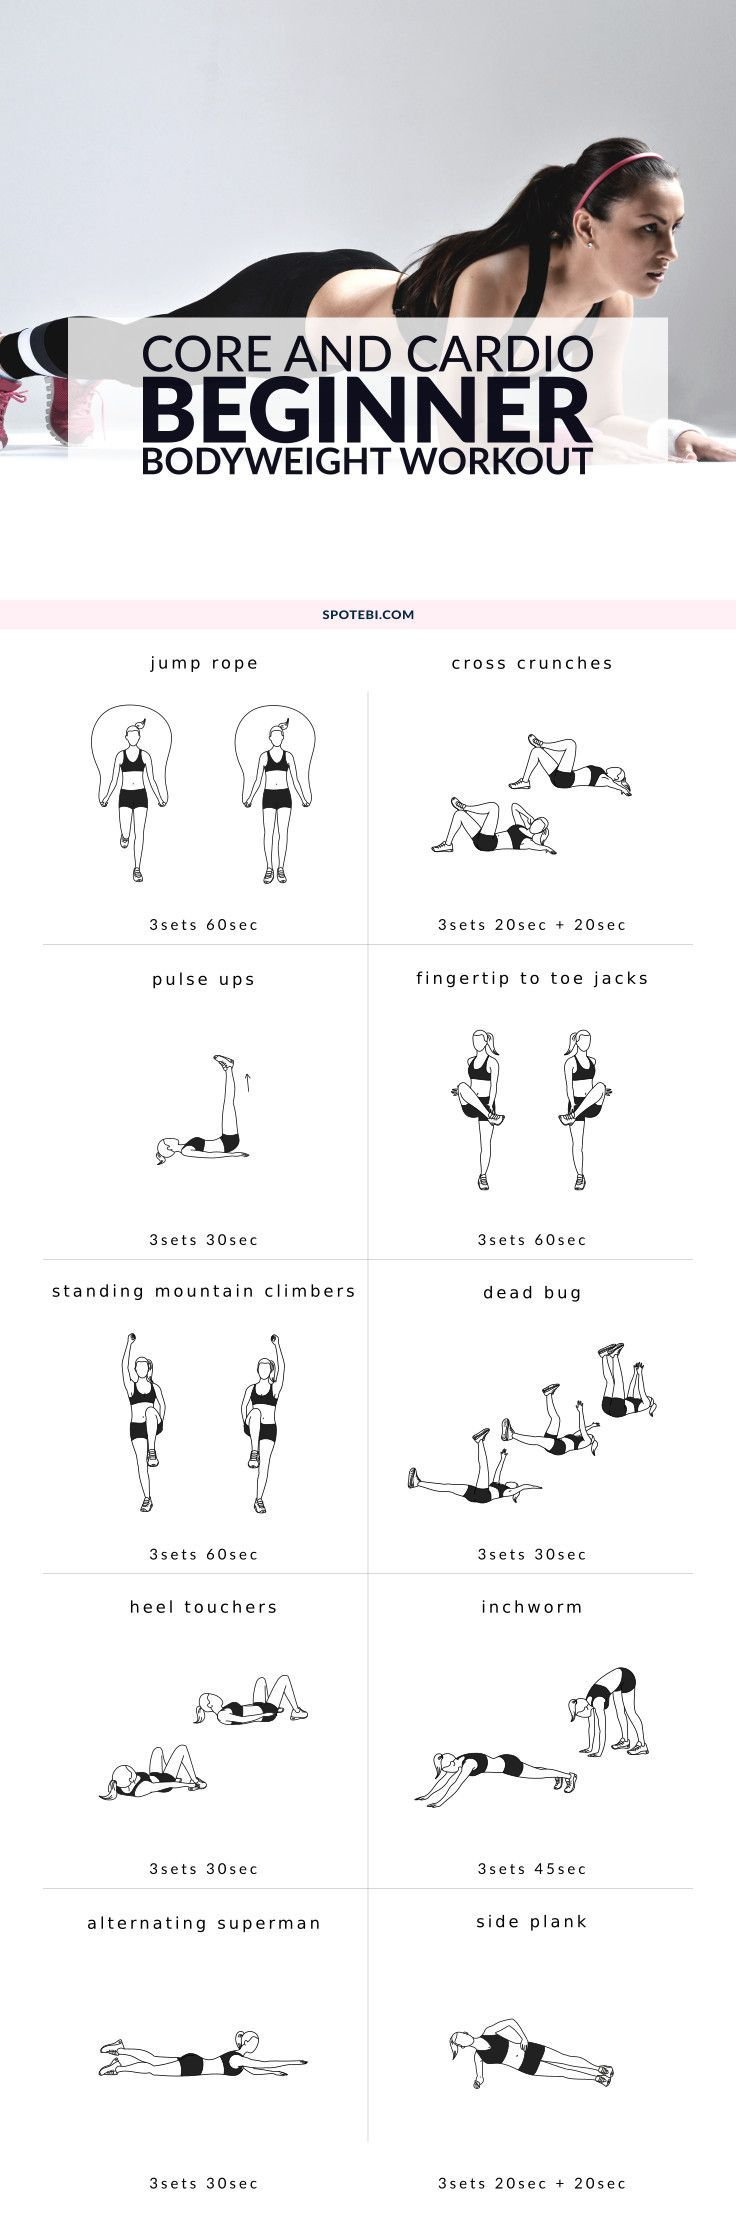 Boost your metabolism, trim your midsection and improve your fitness level with this core and cardio beginner bodyweight workout. 10 different exercises to target your core and burn body fat. www.spotebi.com/...